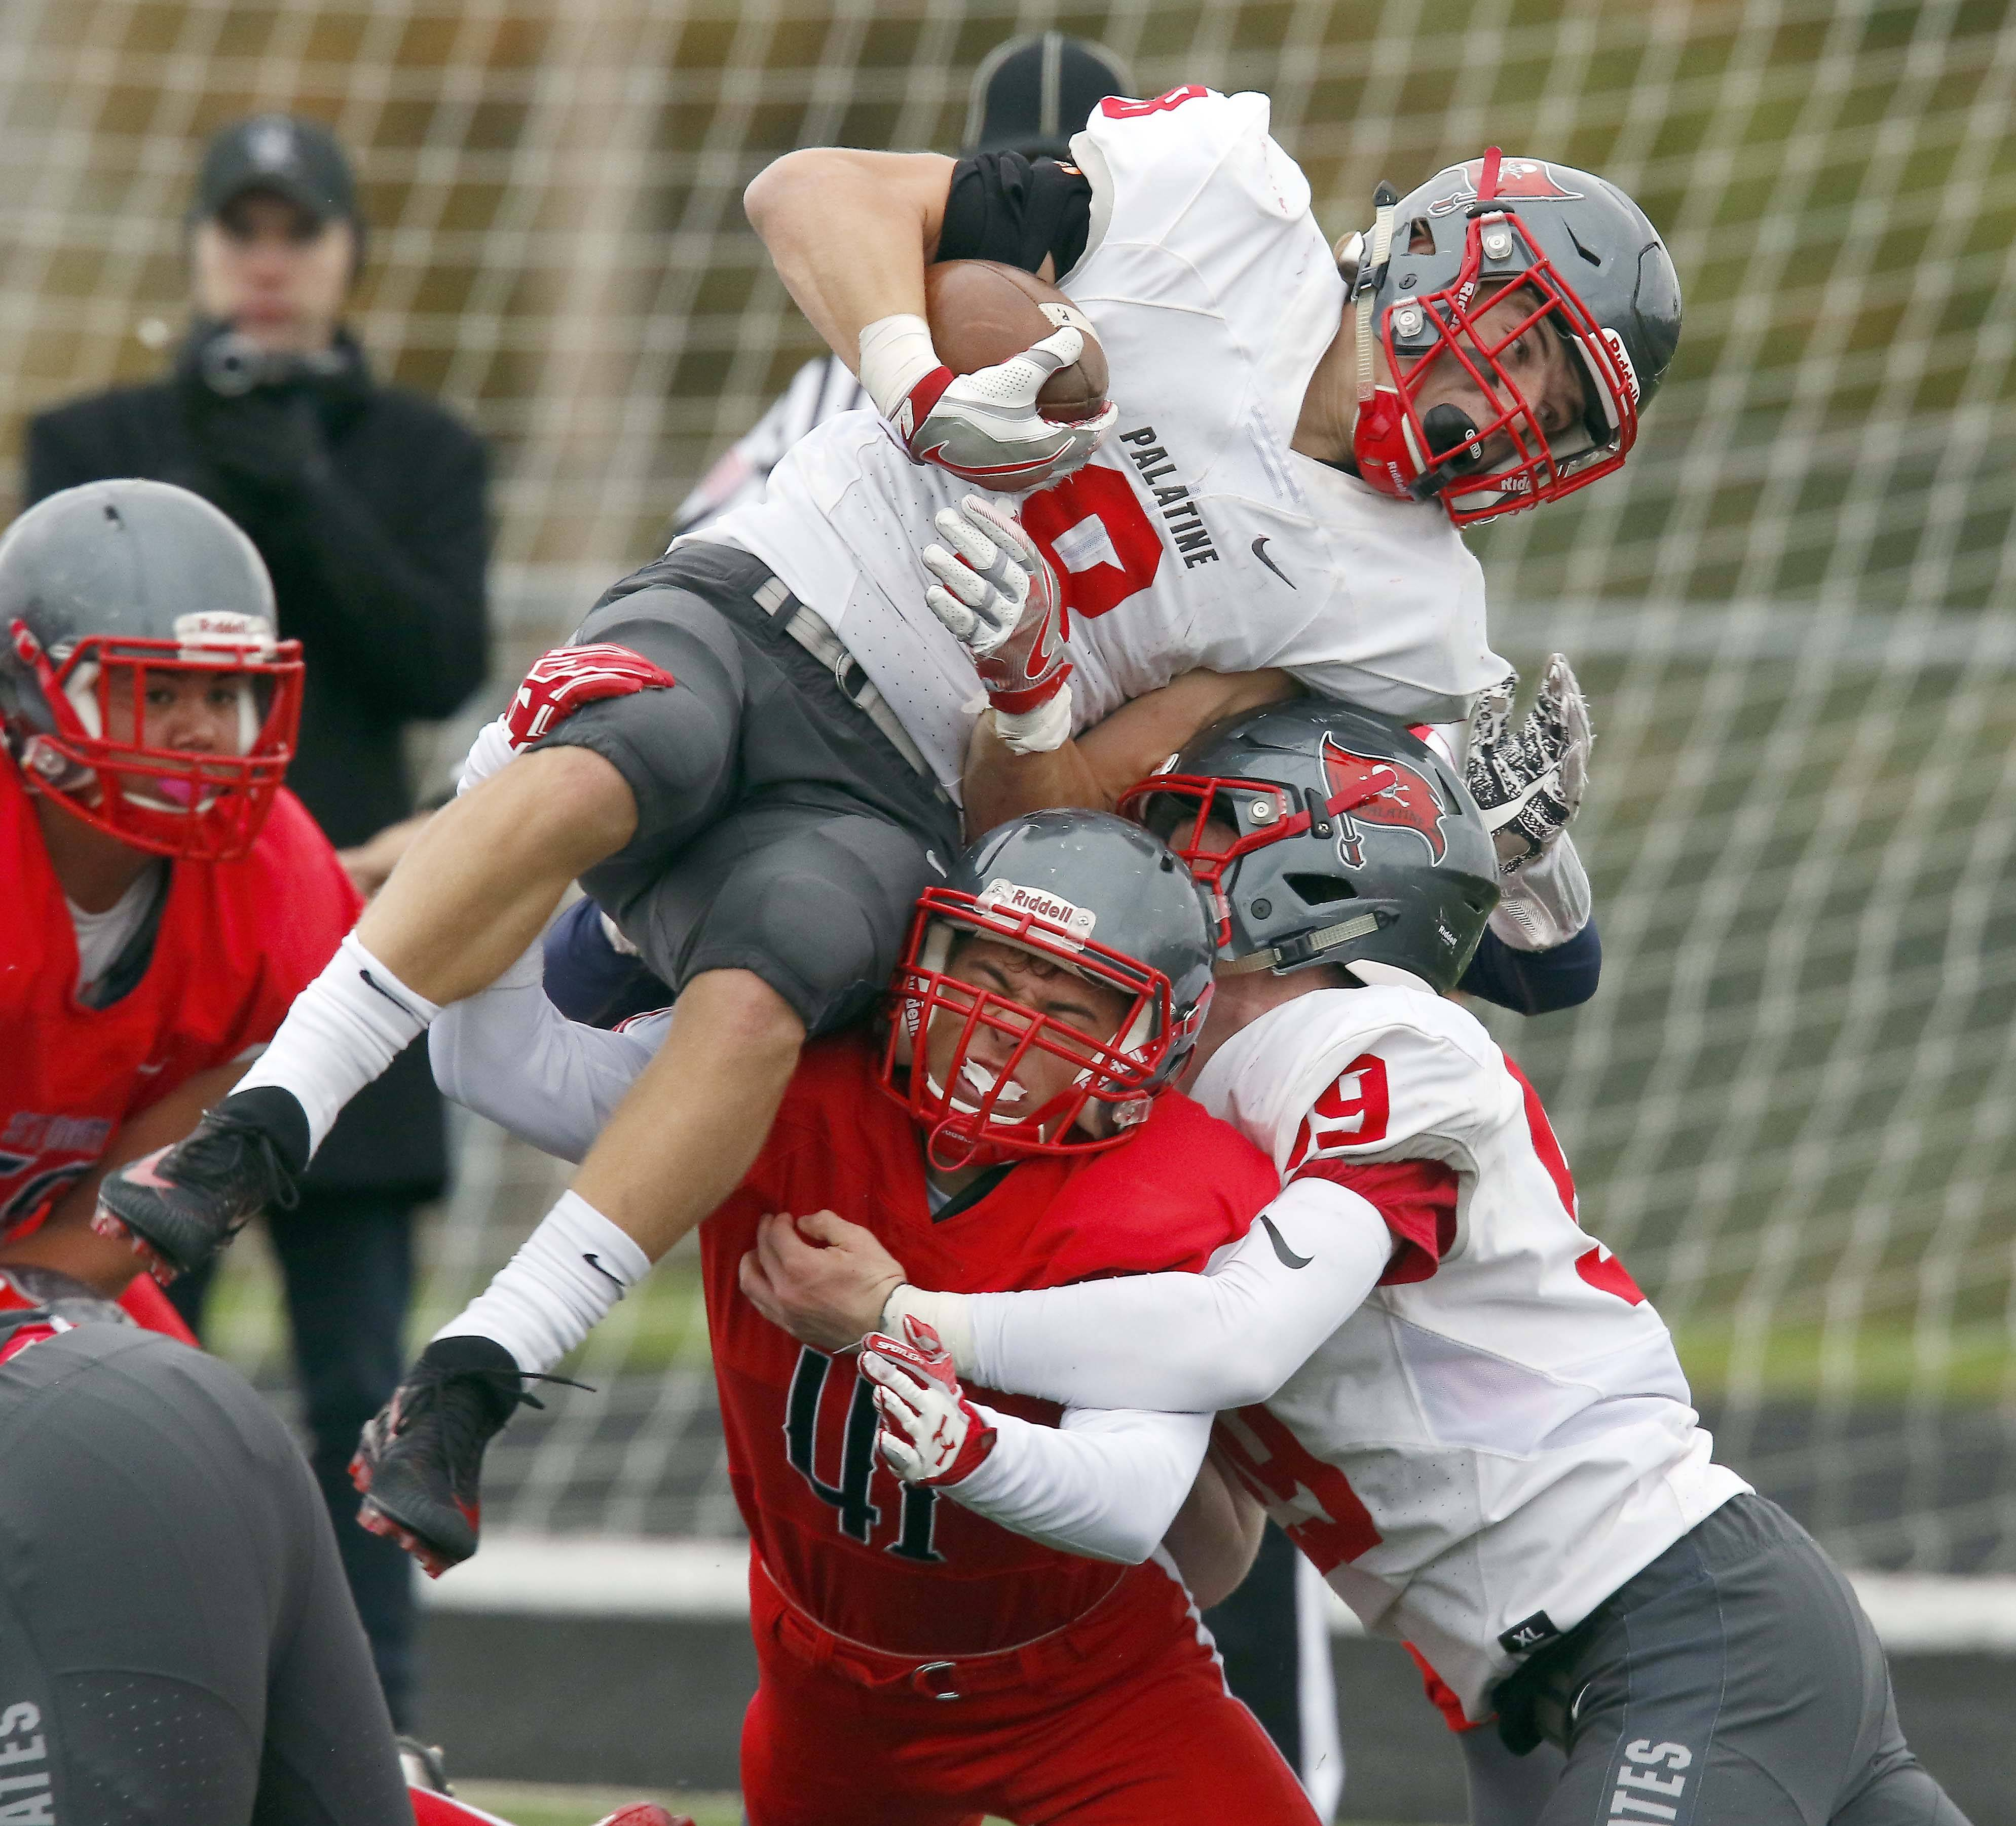 Images: South Elgin vs. Palatine, playoff football